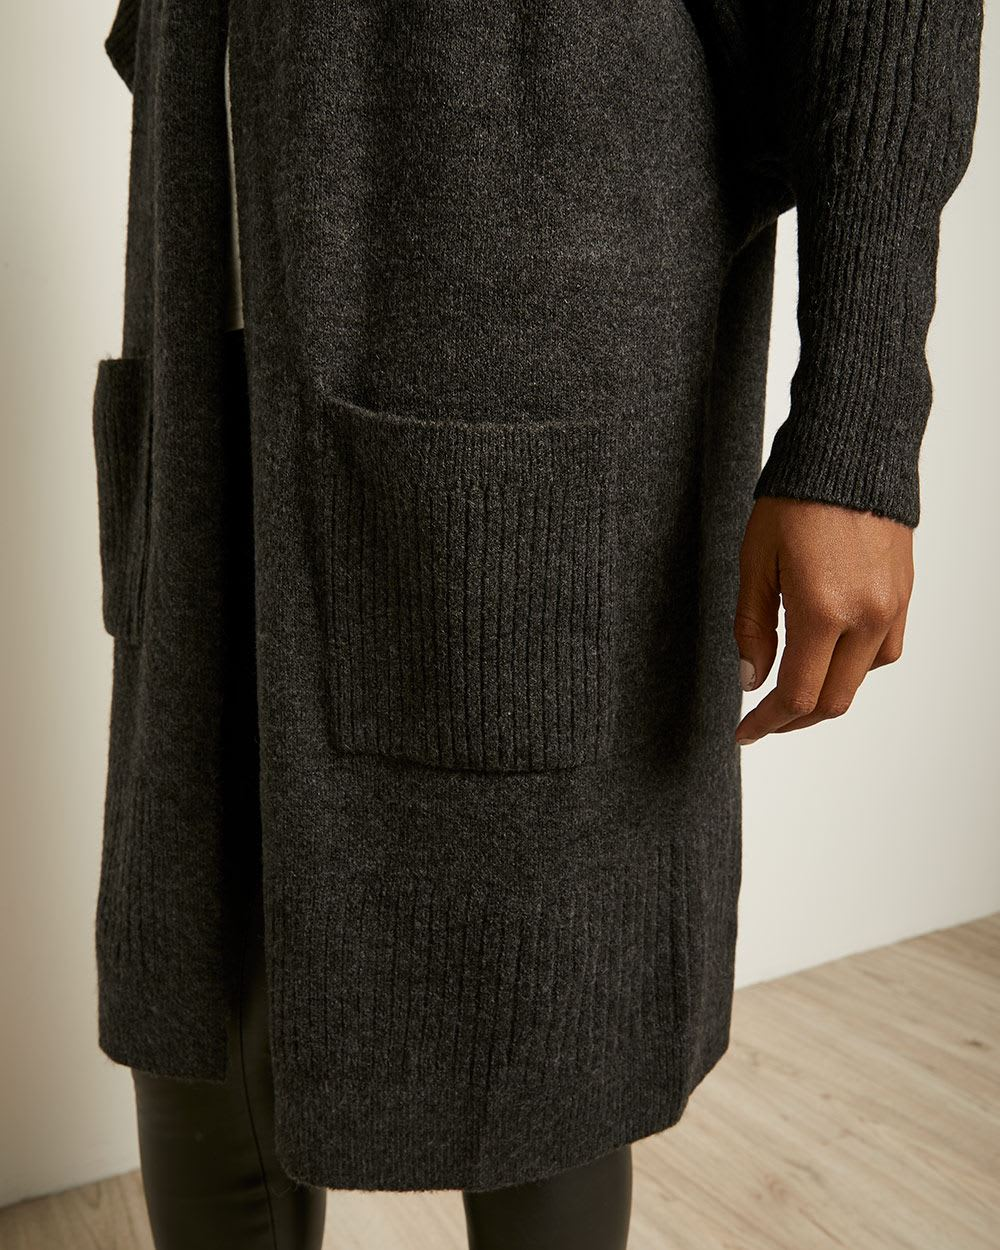 Spongy Knit Bat Wing Sleeve Cardigan